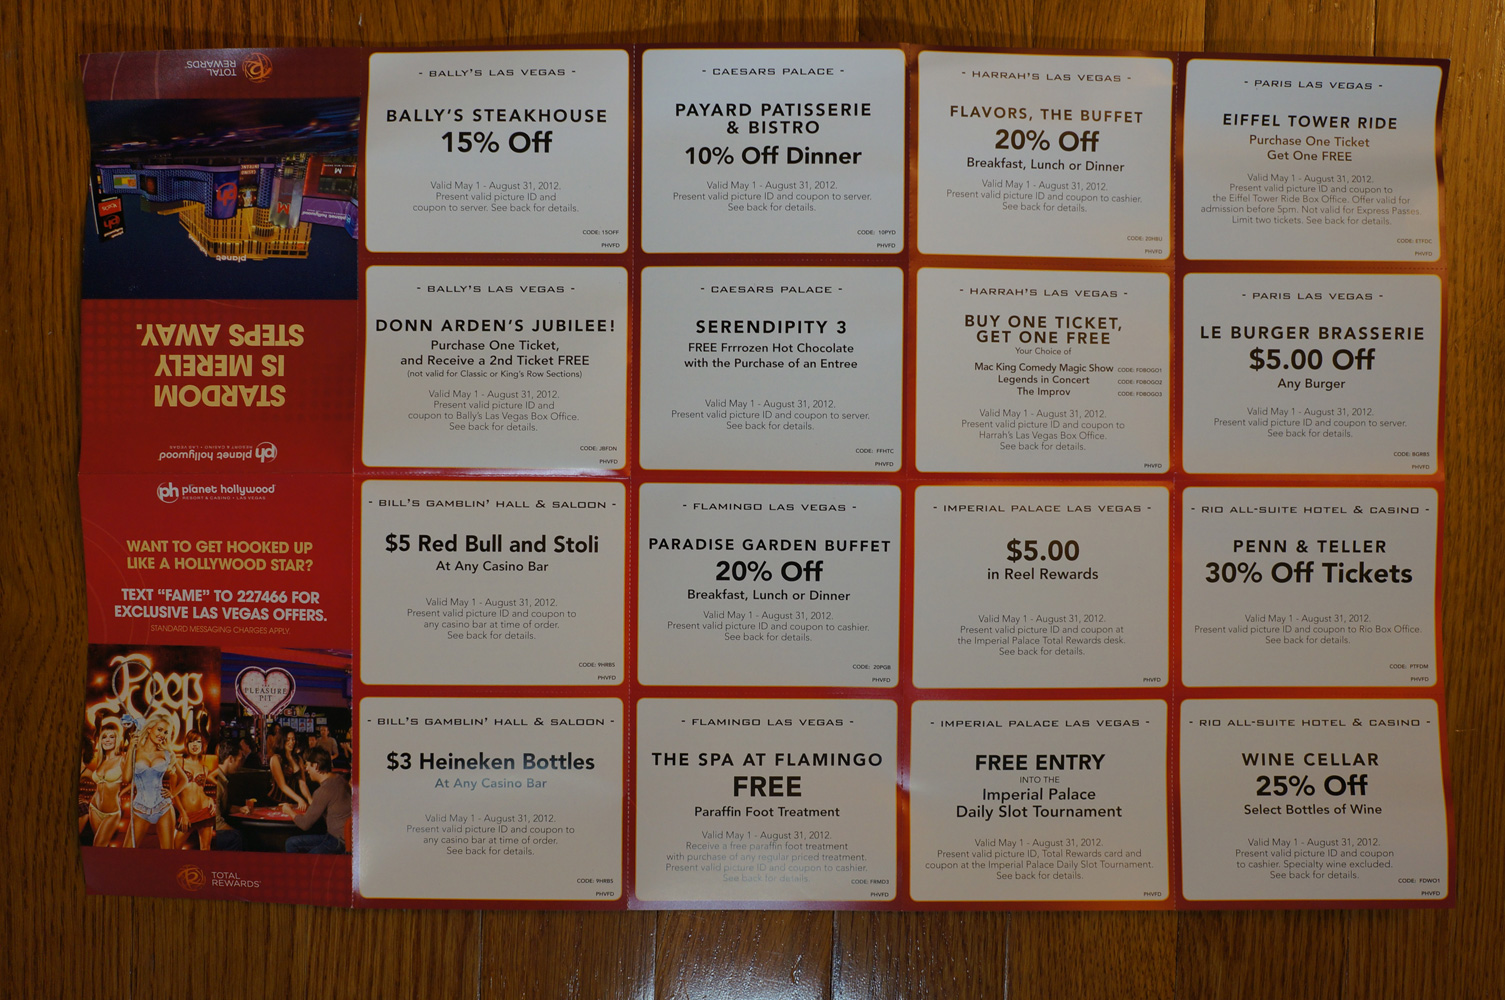 The lodge coupons